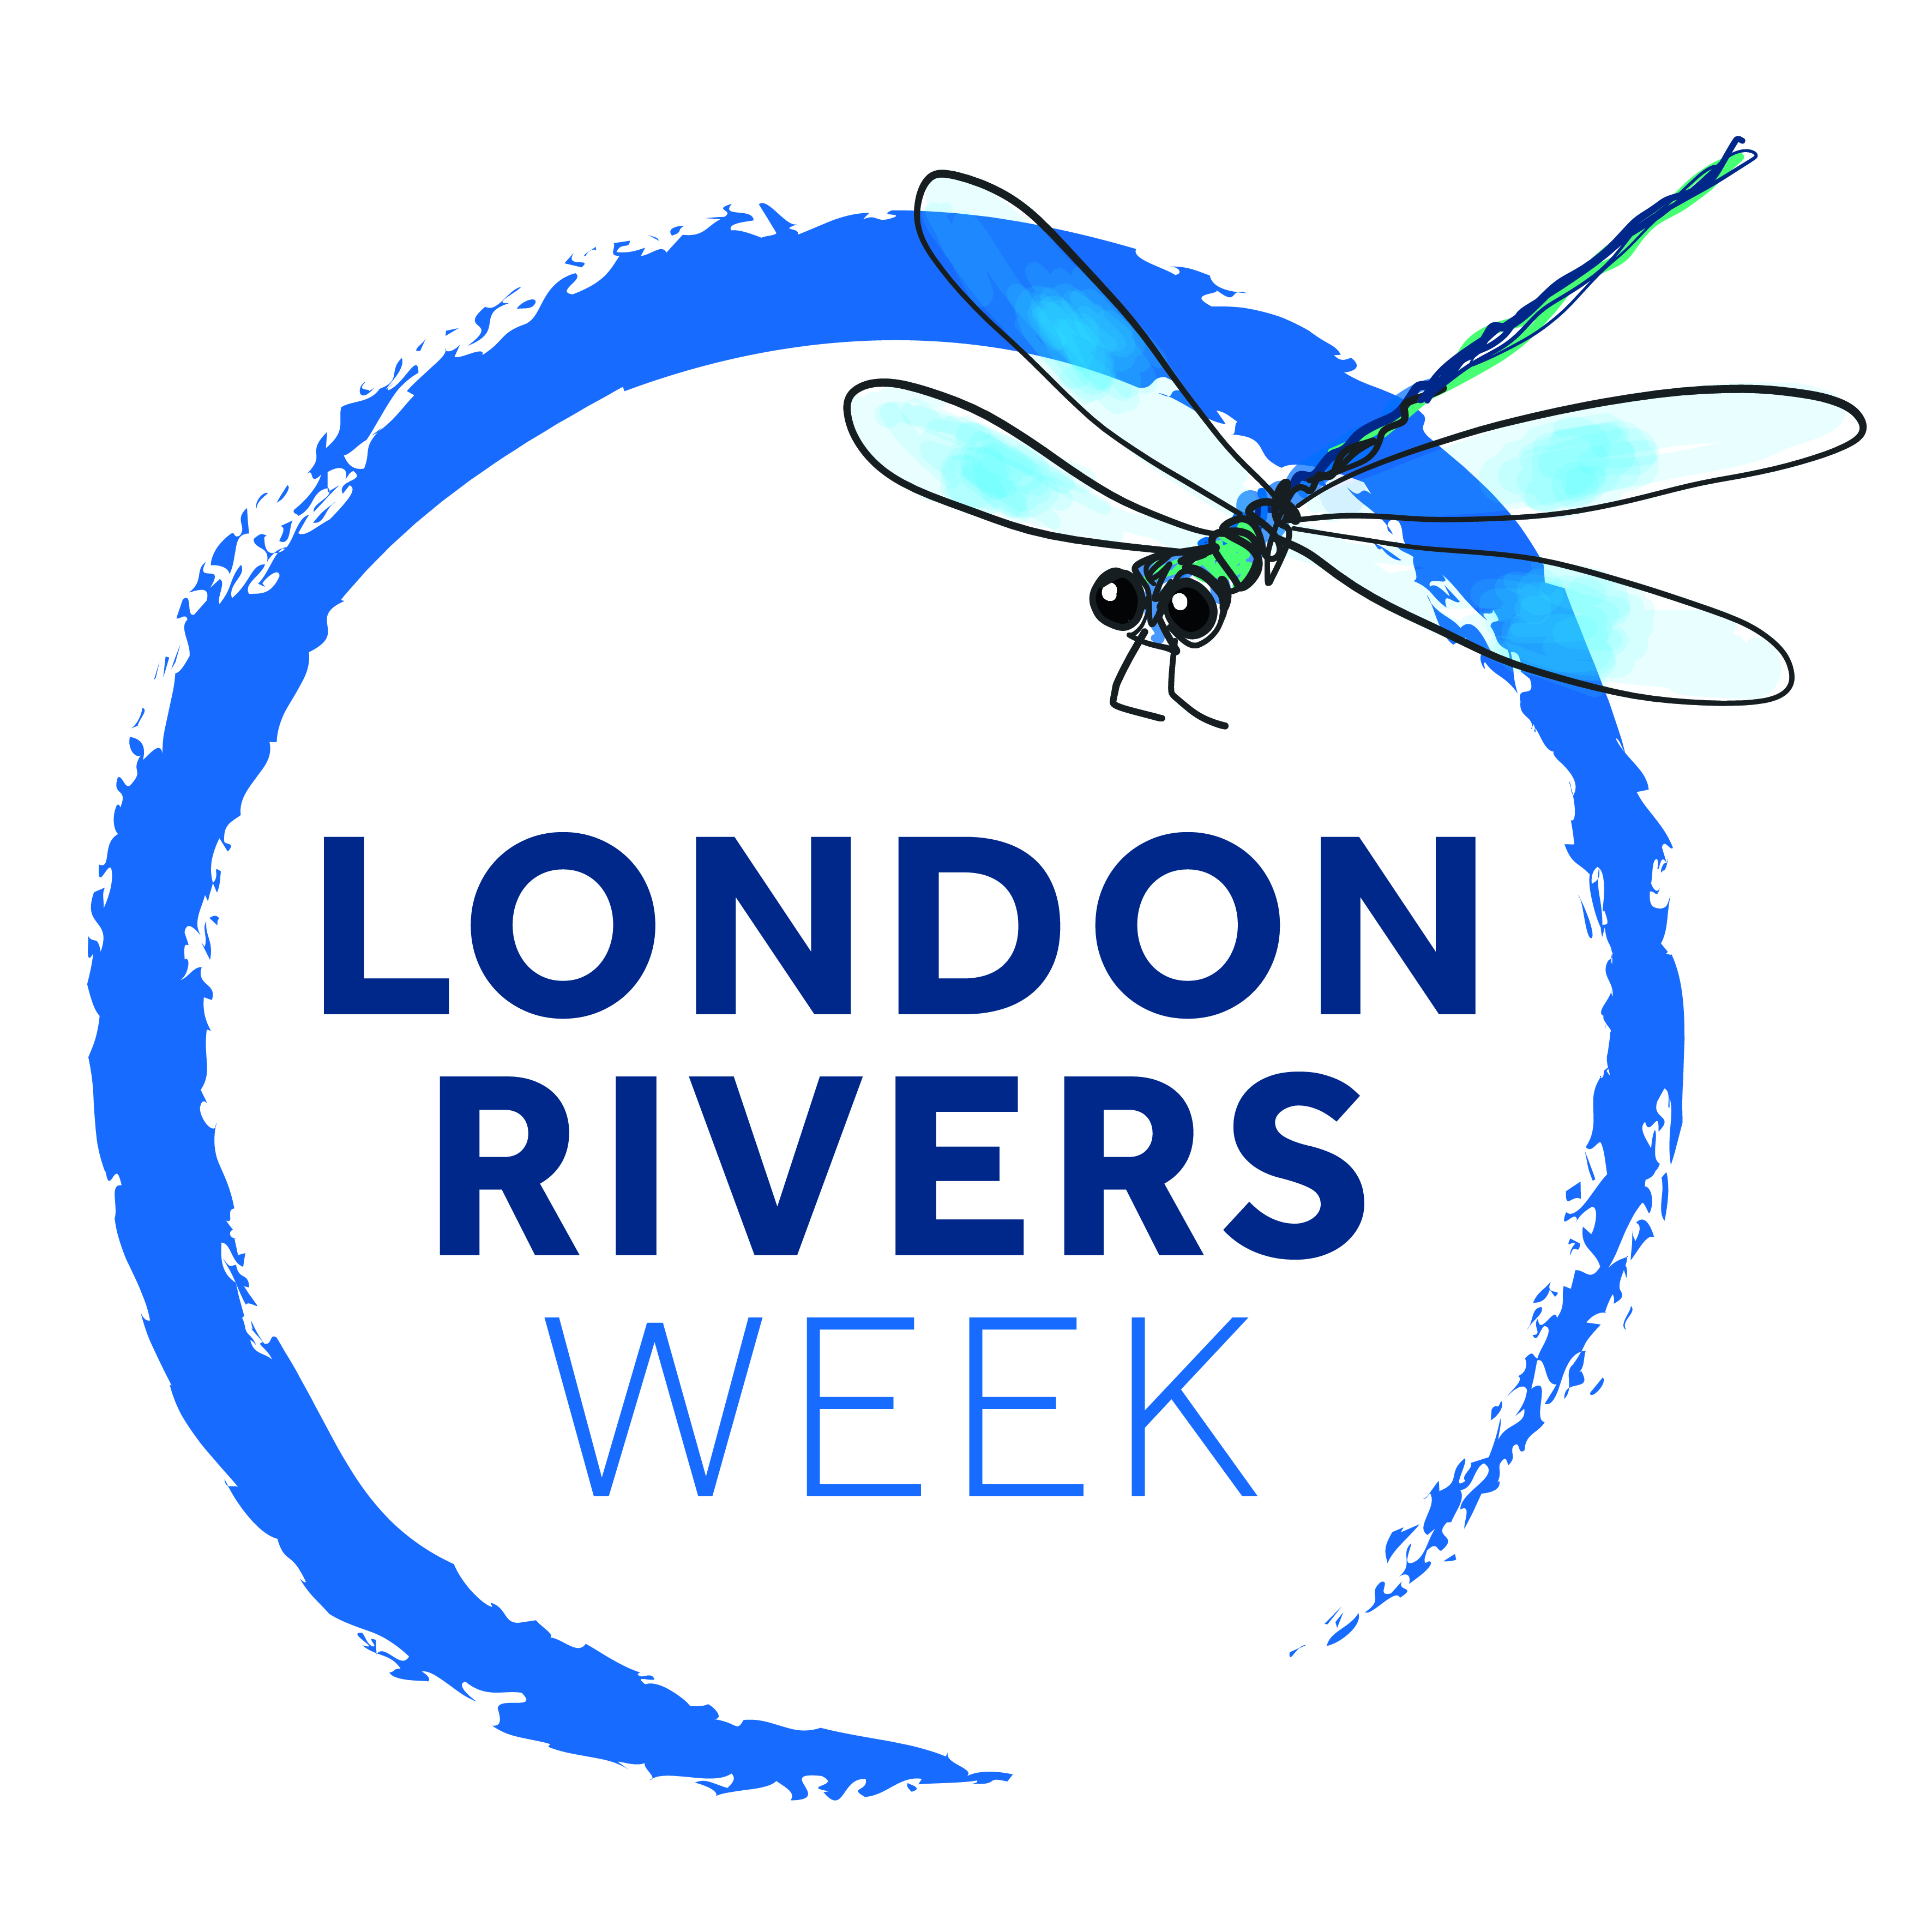 London Rivers Week: River Roding Clean Up and film - Thames21